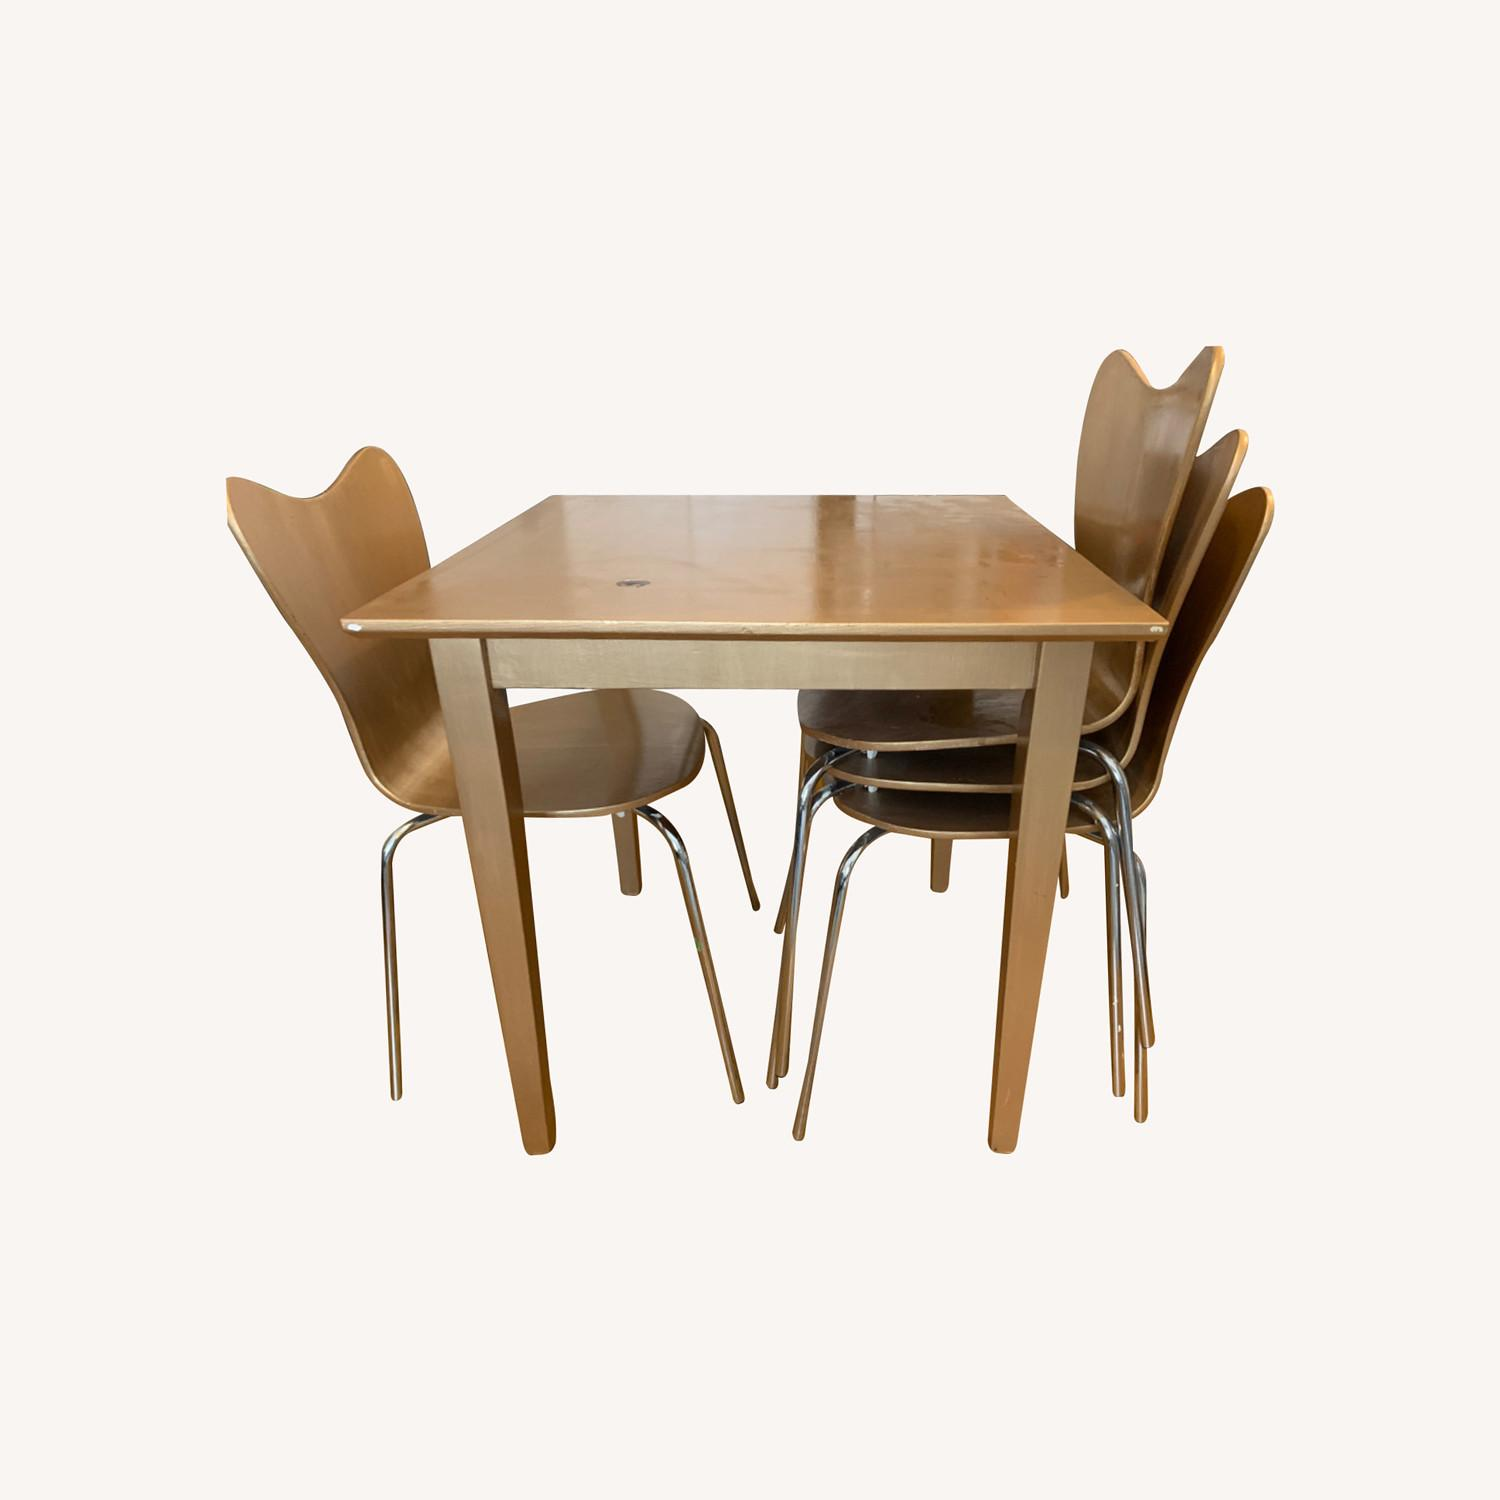 Gold West Elm (4) Chairs and Table - image-0